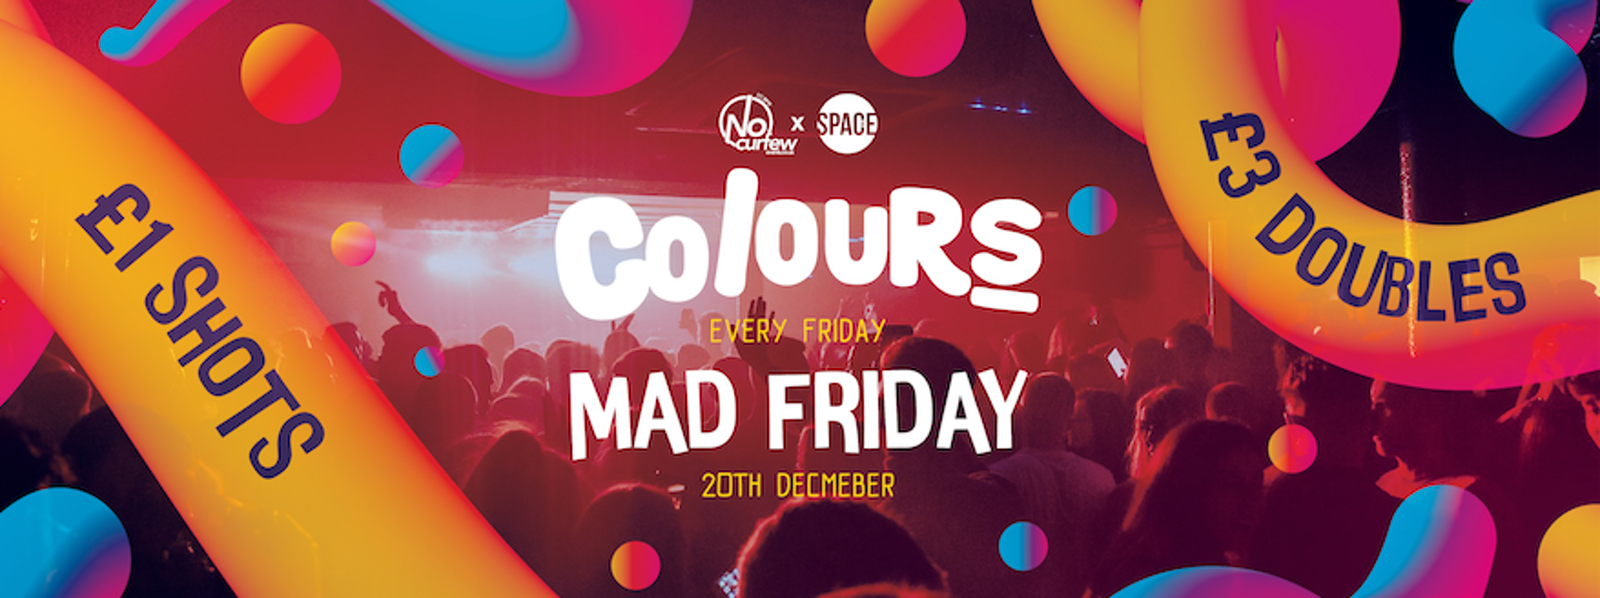 Colours Leeds at Space :: MAD FRIDAY :: £1 Drinks